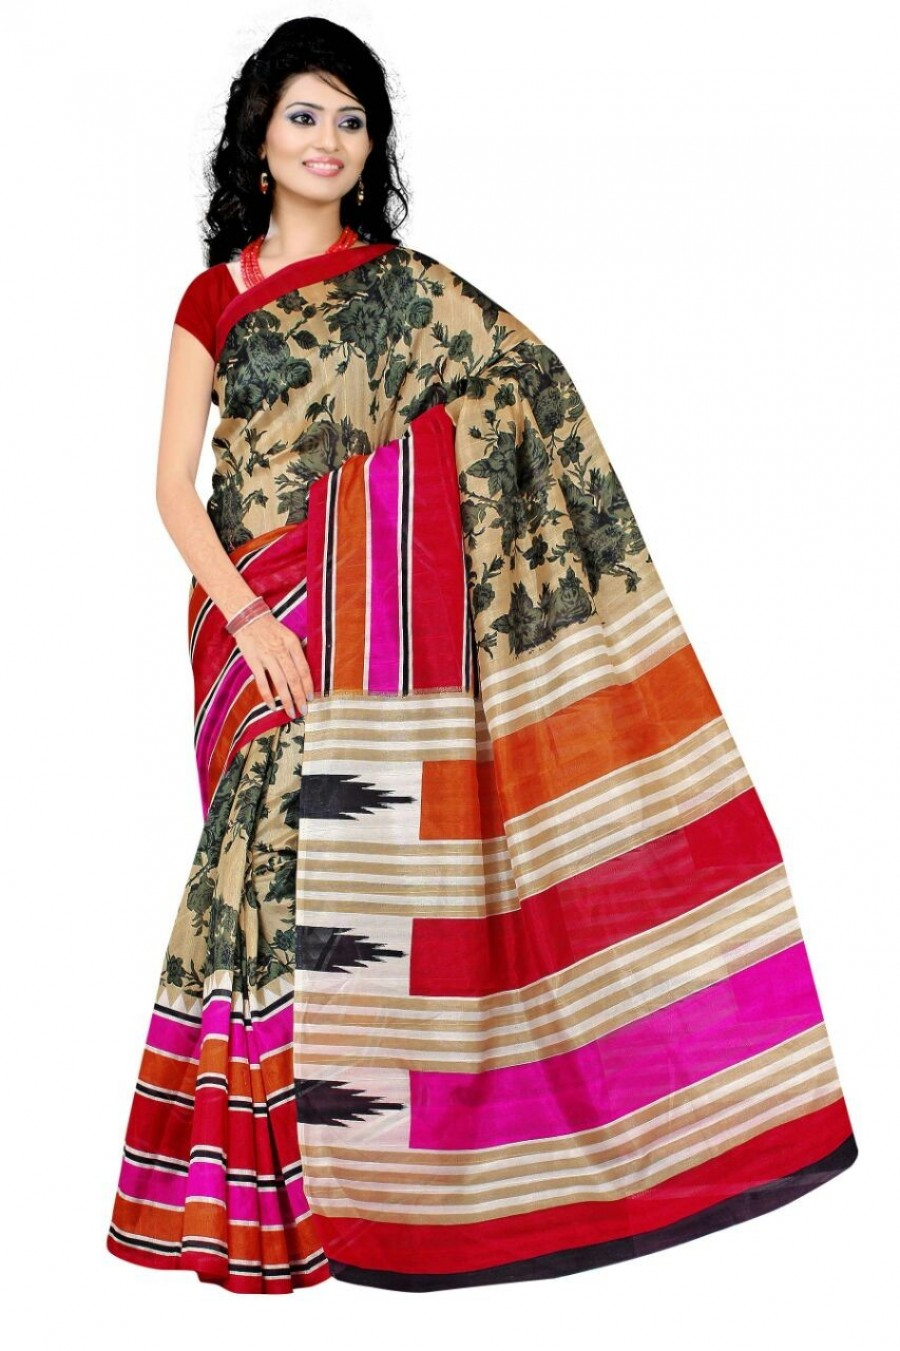 b79e119b039c0 Buy Owomaniya Printed Bhagalpuri Silk Saree With lace Border With Blouse.  Online. View full size